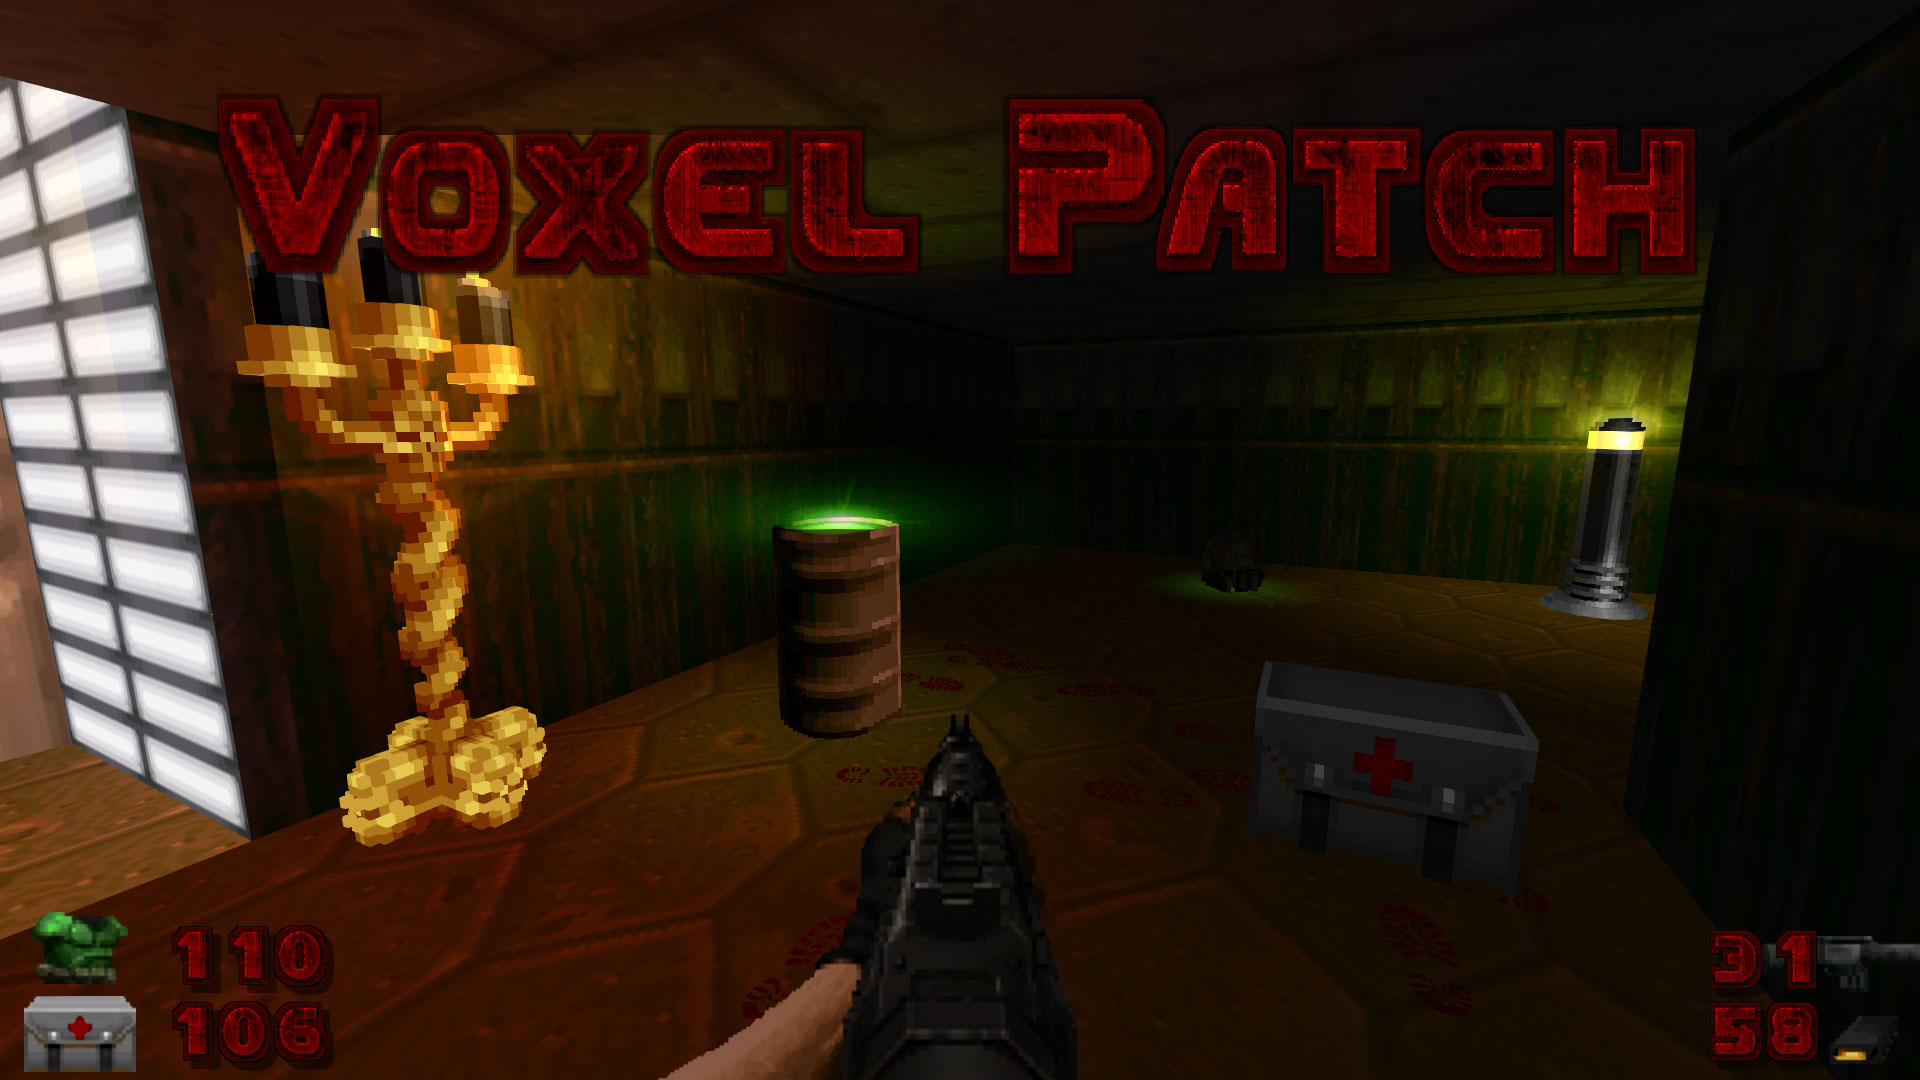 Brutal Doom Voxel Patch v3 2 1 addon - Mod DB